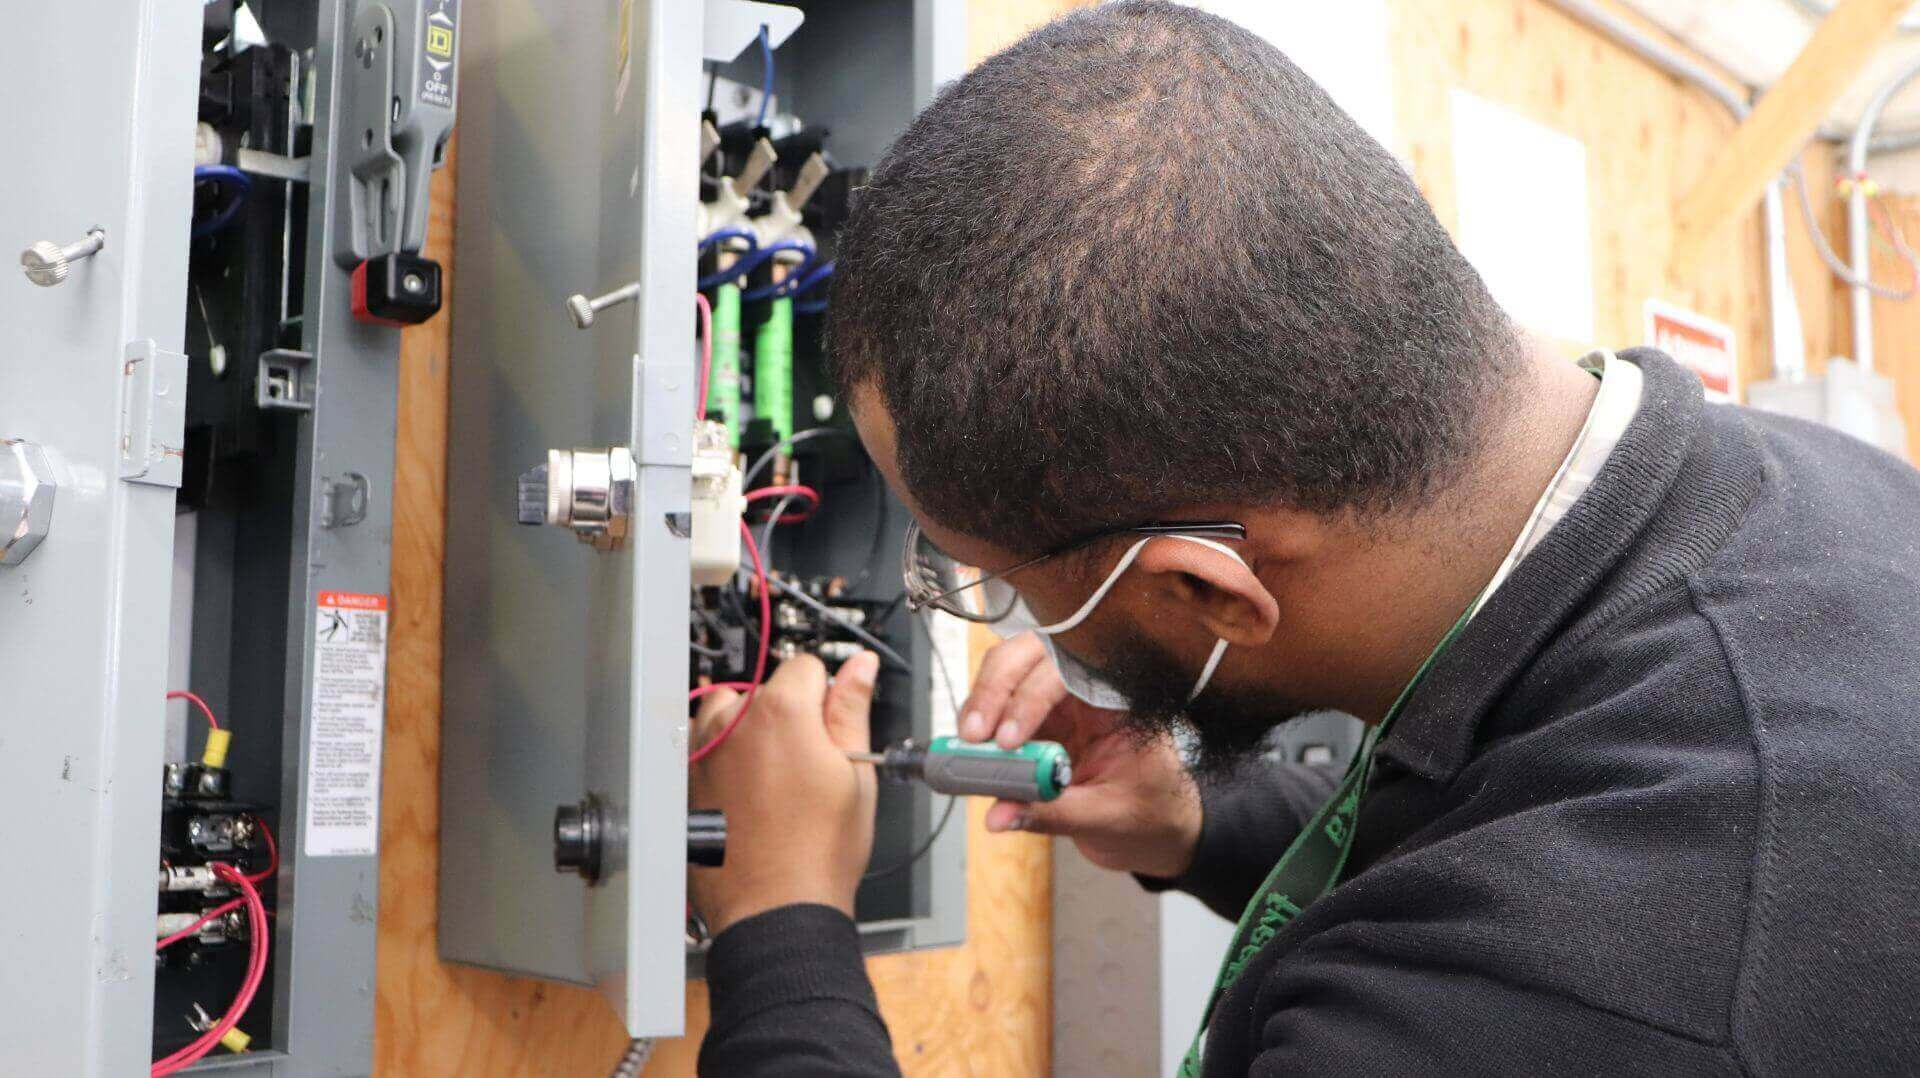 What Do You Need To Become An Industrial Electrician?